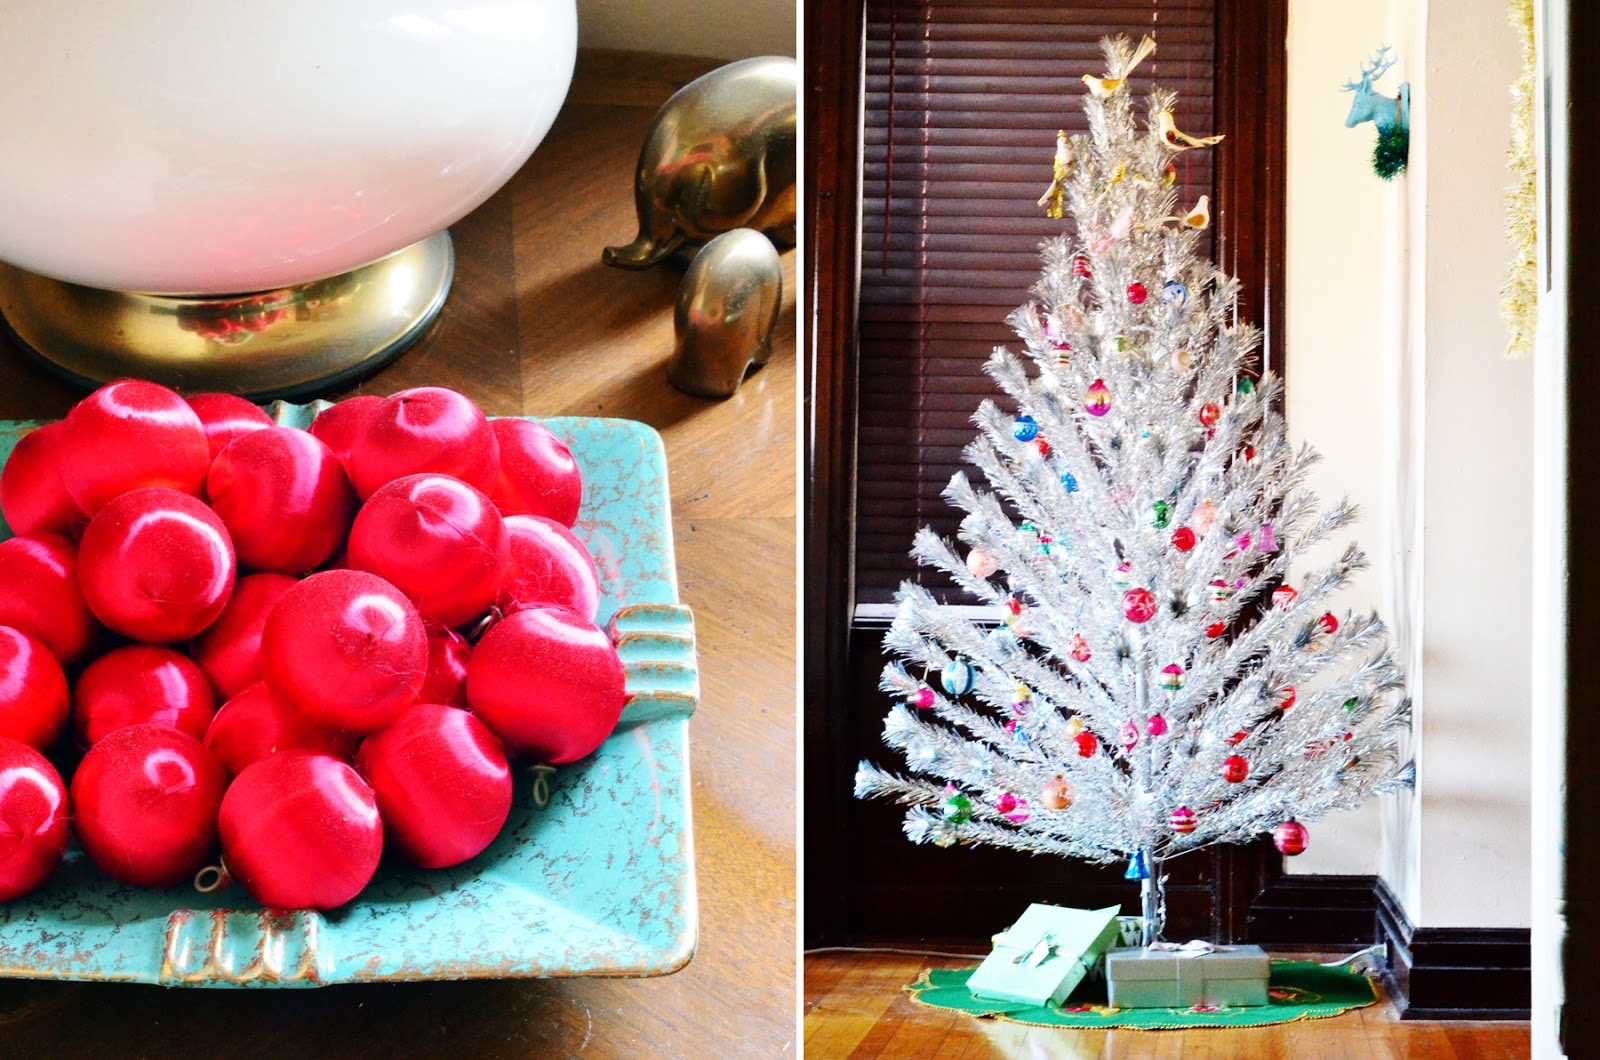 living room silk red ball ornaments in hubss grandmothers mid century dish aluminum christmas tree thrifted this summer with my grandmothers glass - Mid Century Christmas Decor